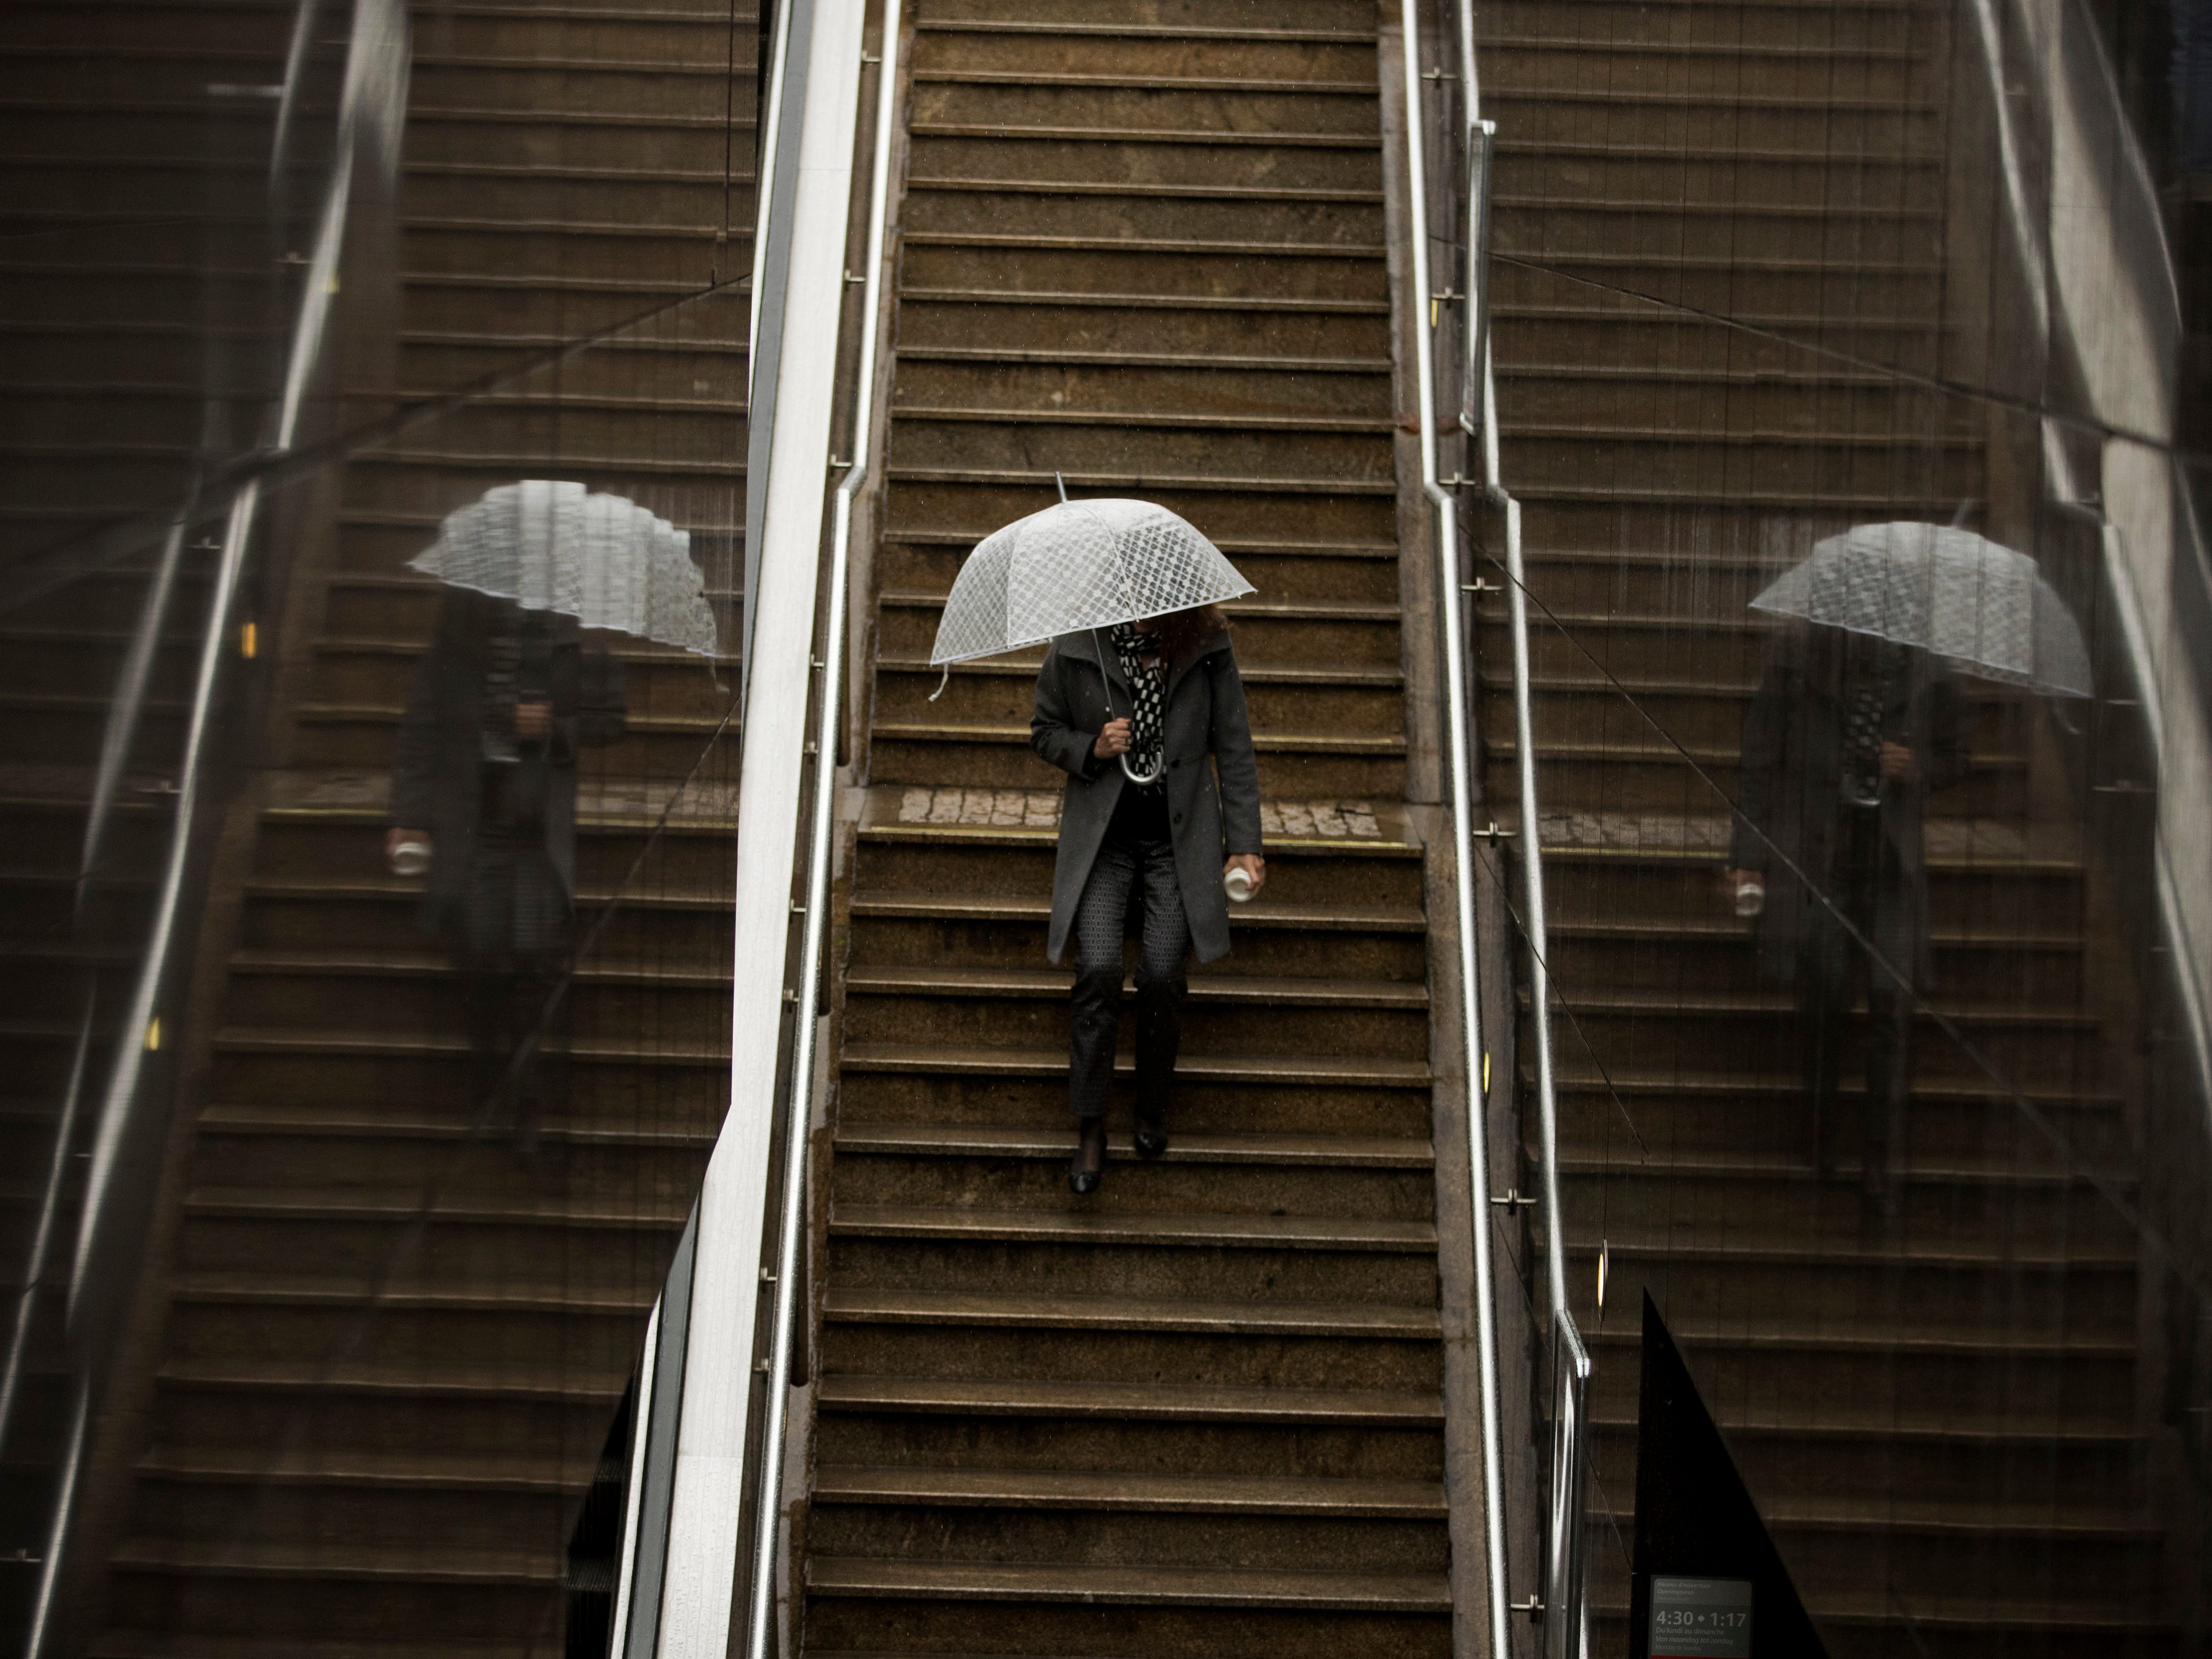 A woman shelters from the rain as she walks down stairs to enter Schuman metro station in Brussels, Tuesday, Oct. 30, 2018.